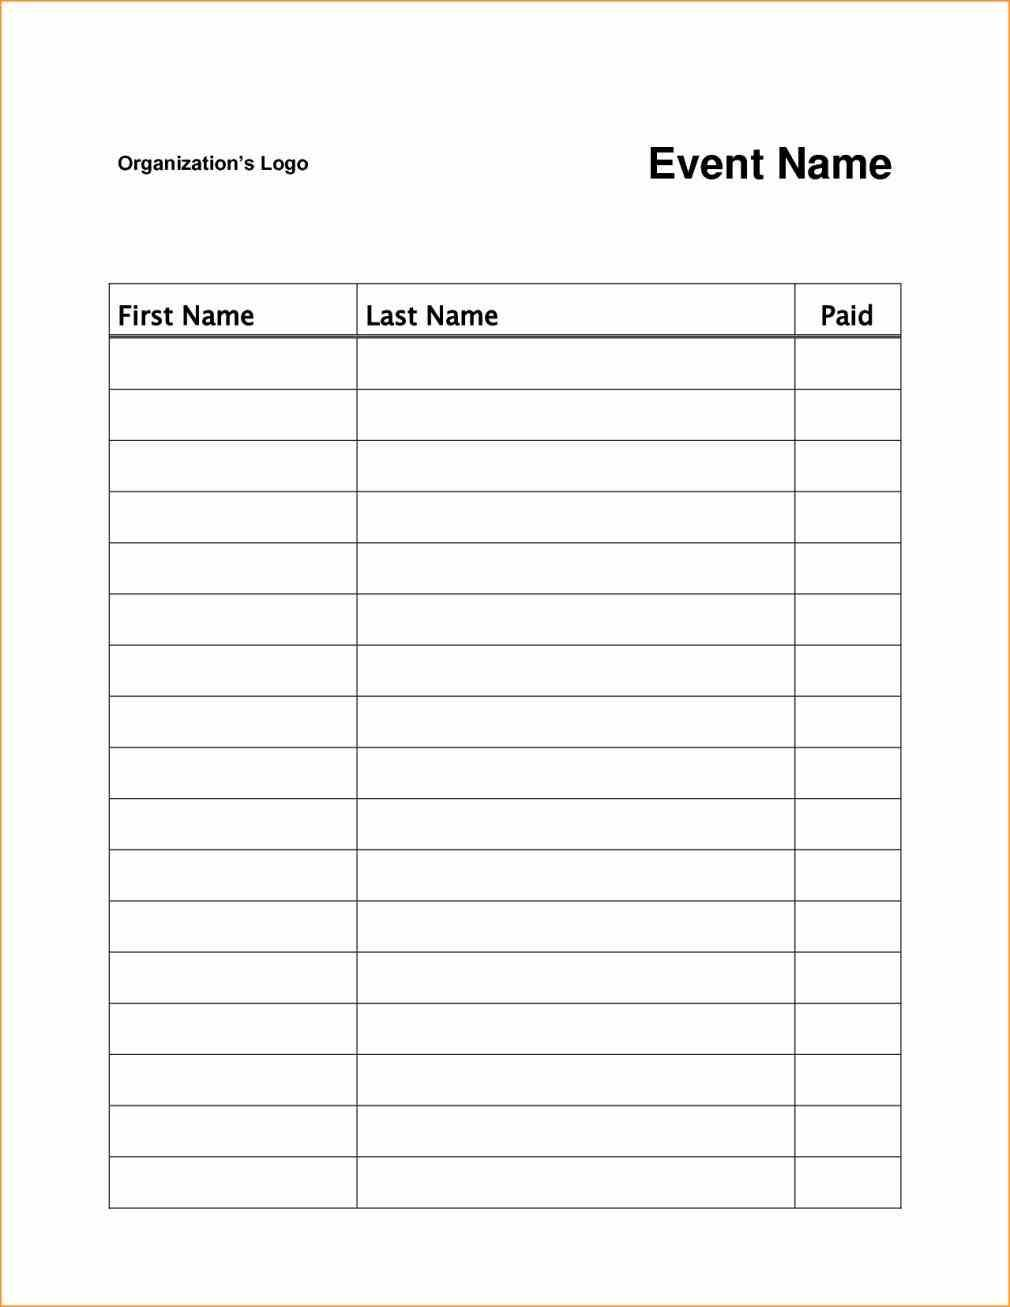 event or class workshop forms a Sign Up Sheet Template Word simple – Sign Up Sheet Template Word